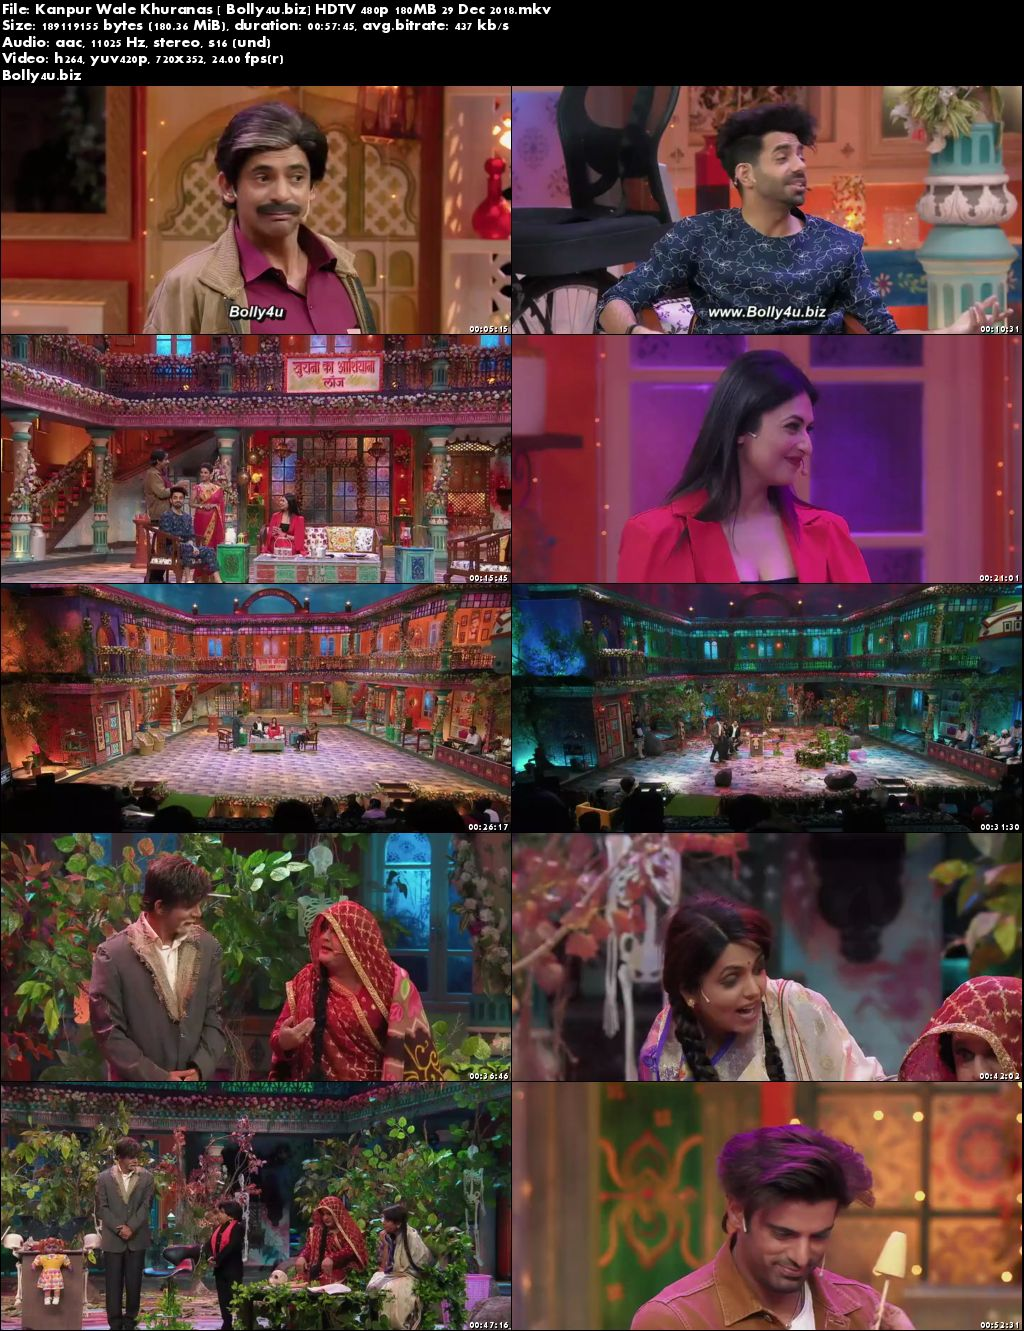 Kanpur Wale Khuranas HDTV 480p 180MB 29 Dec 2018 Download